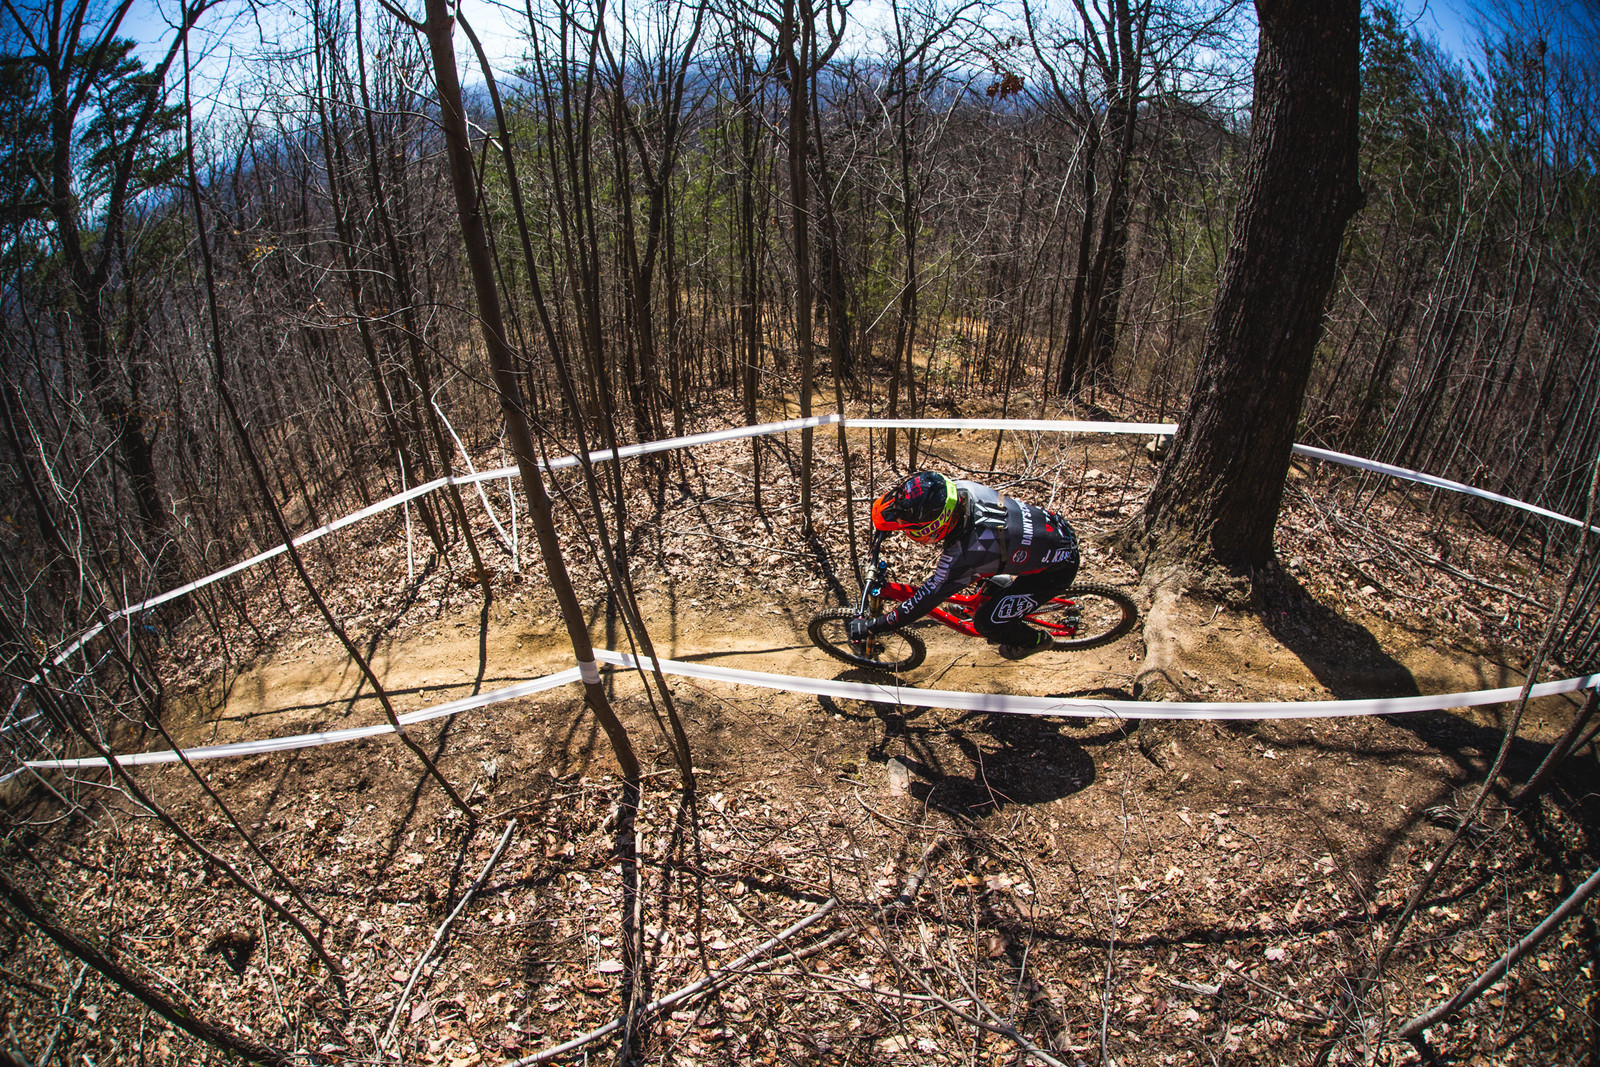 Windrock Pro GRT DH Course - 2017 Pro GRT Windrock, Tennessee DH Action - Mountain Biking Pictures - Vital MTB